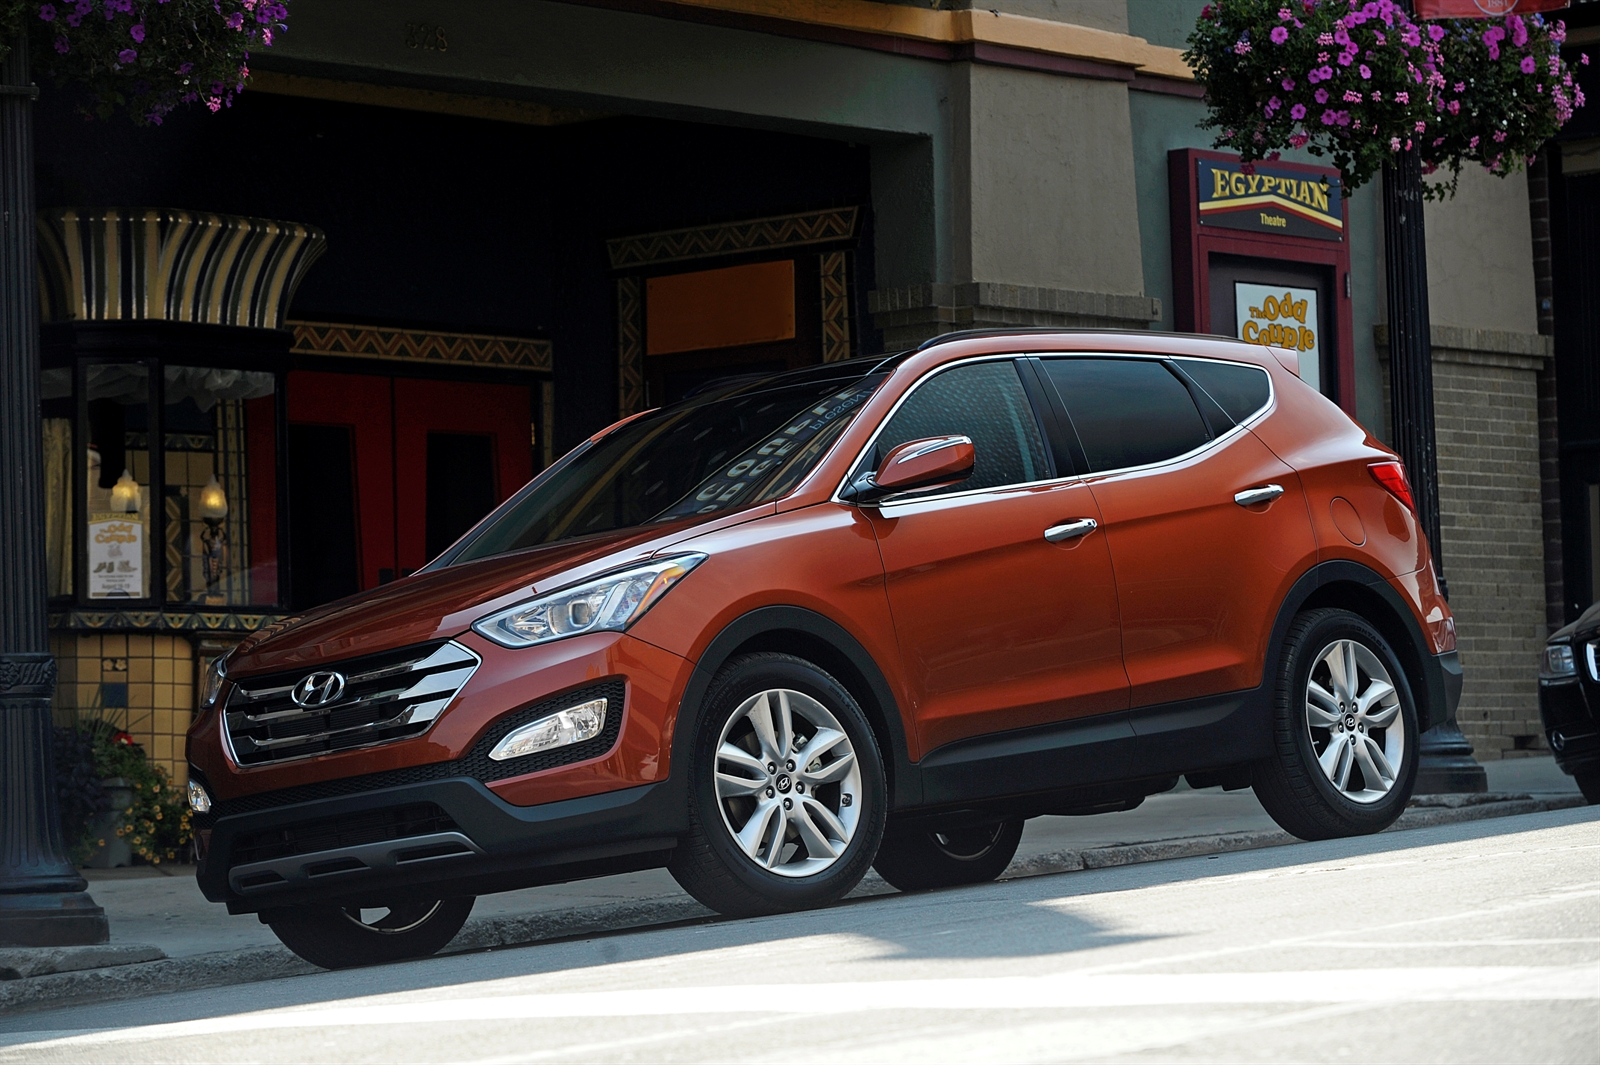 2014 hyundai santa fe review ratings specs prices and photos the car connection. Black Bedroom Furniture Sets. Home Design Ideas